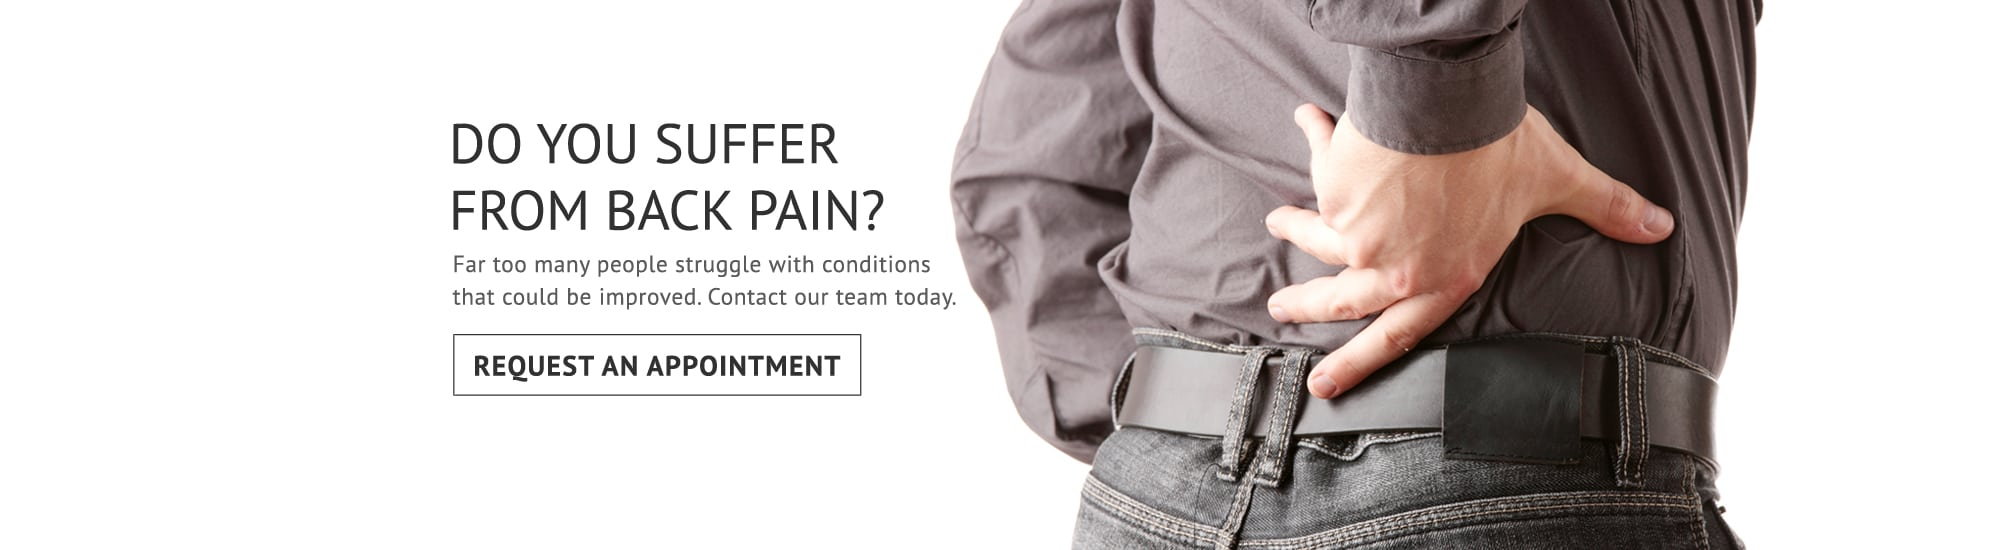 Back pain slider